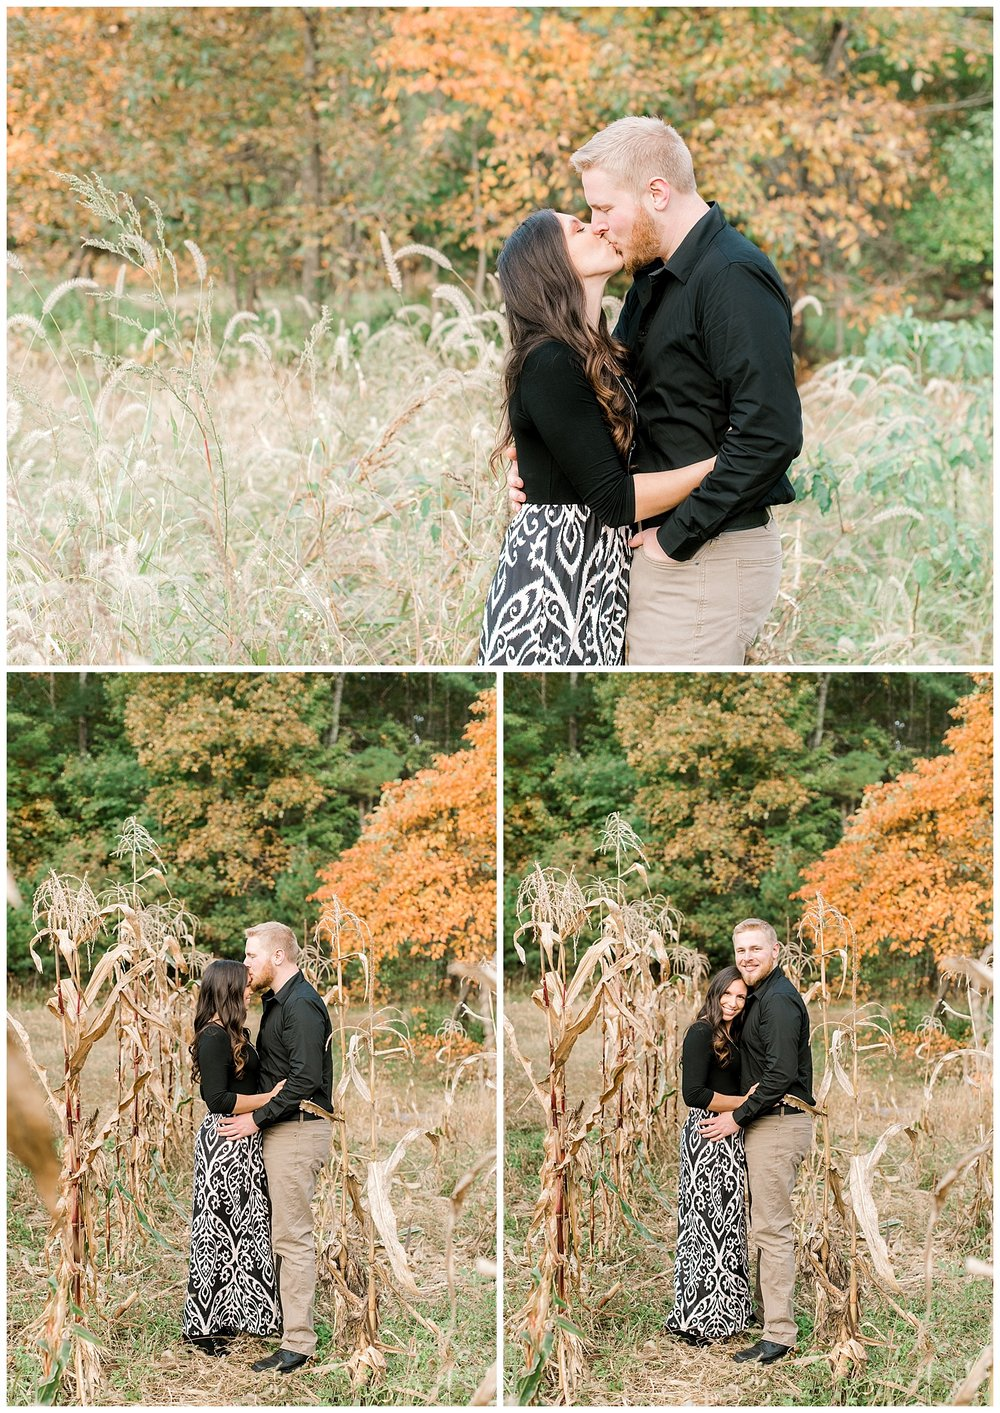 october18-connecticut-engagement-photography-rustic-farm-4.jpg